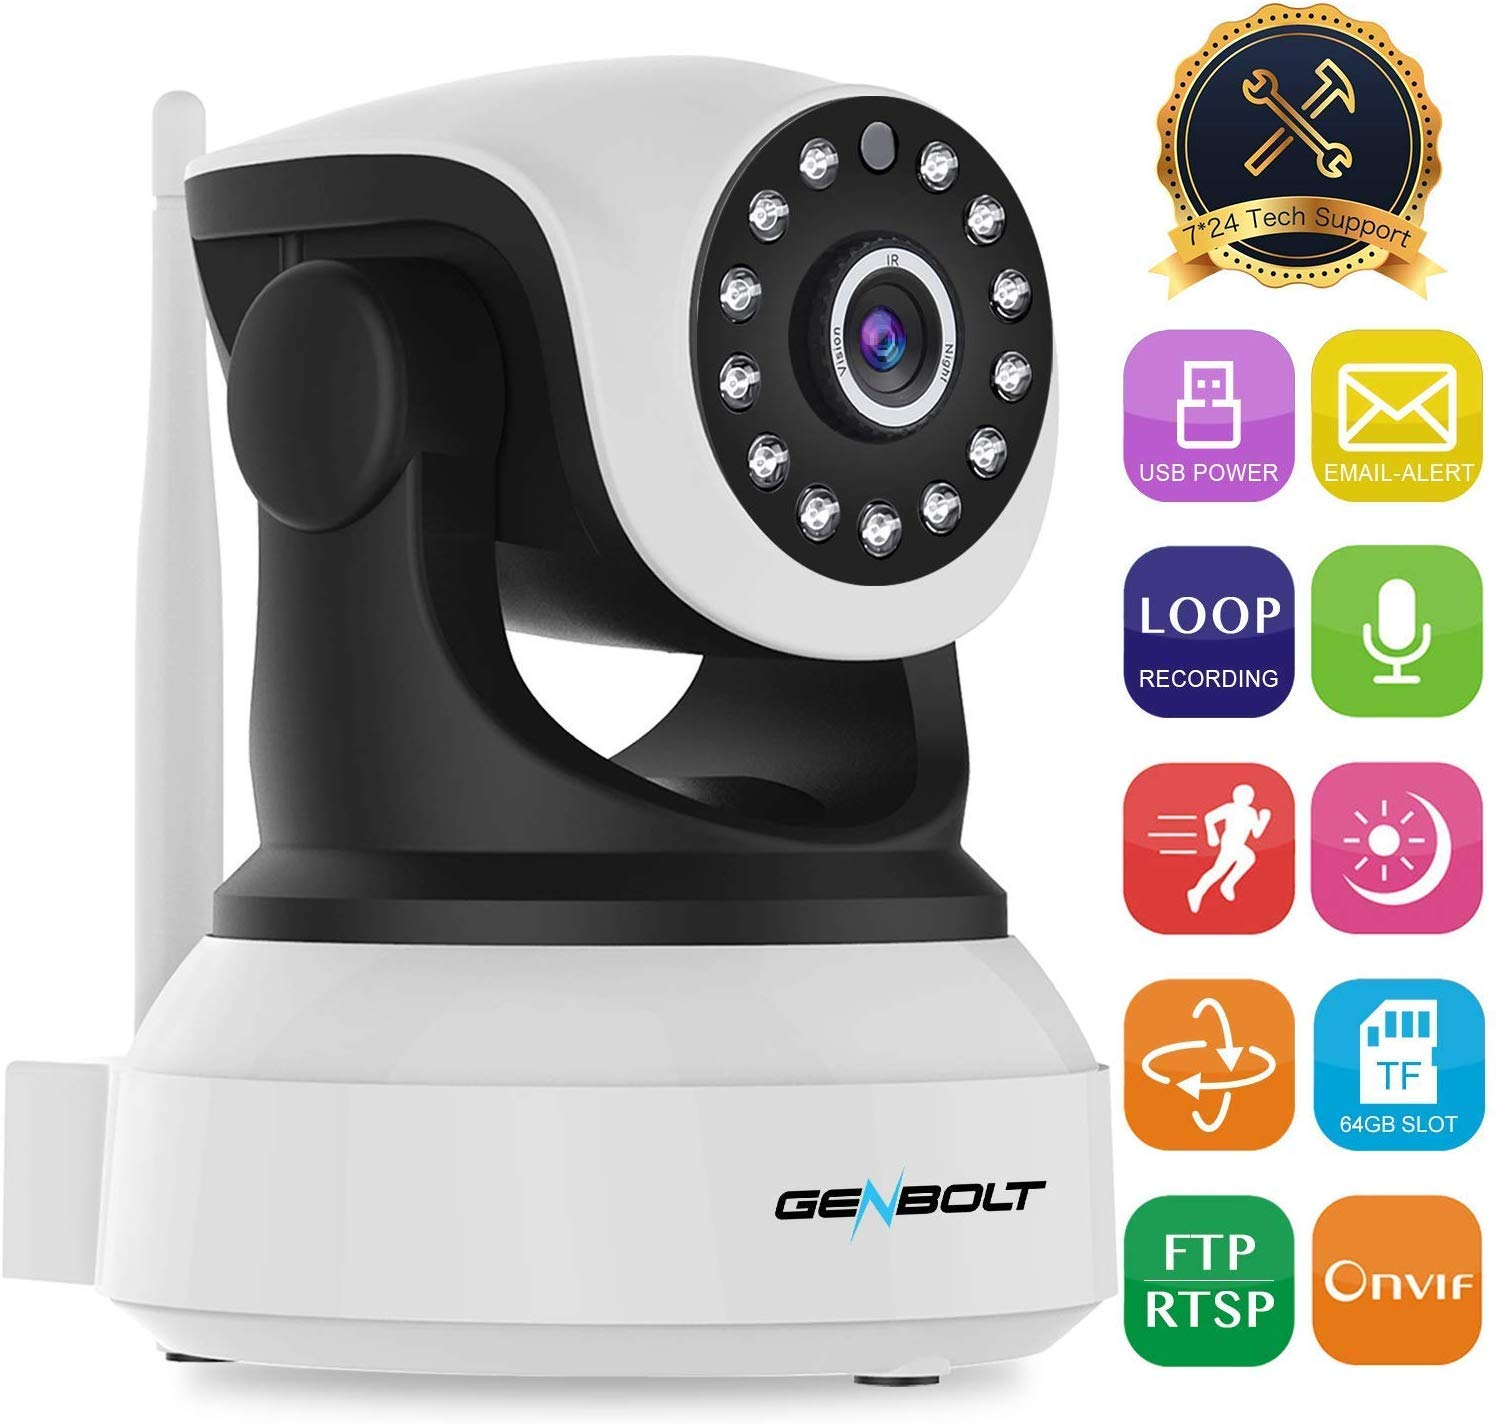 1080 wifi indoor camera UP TO 30% off , after discount £20.39